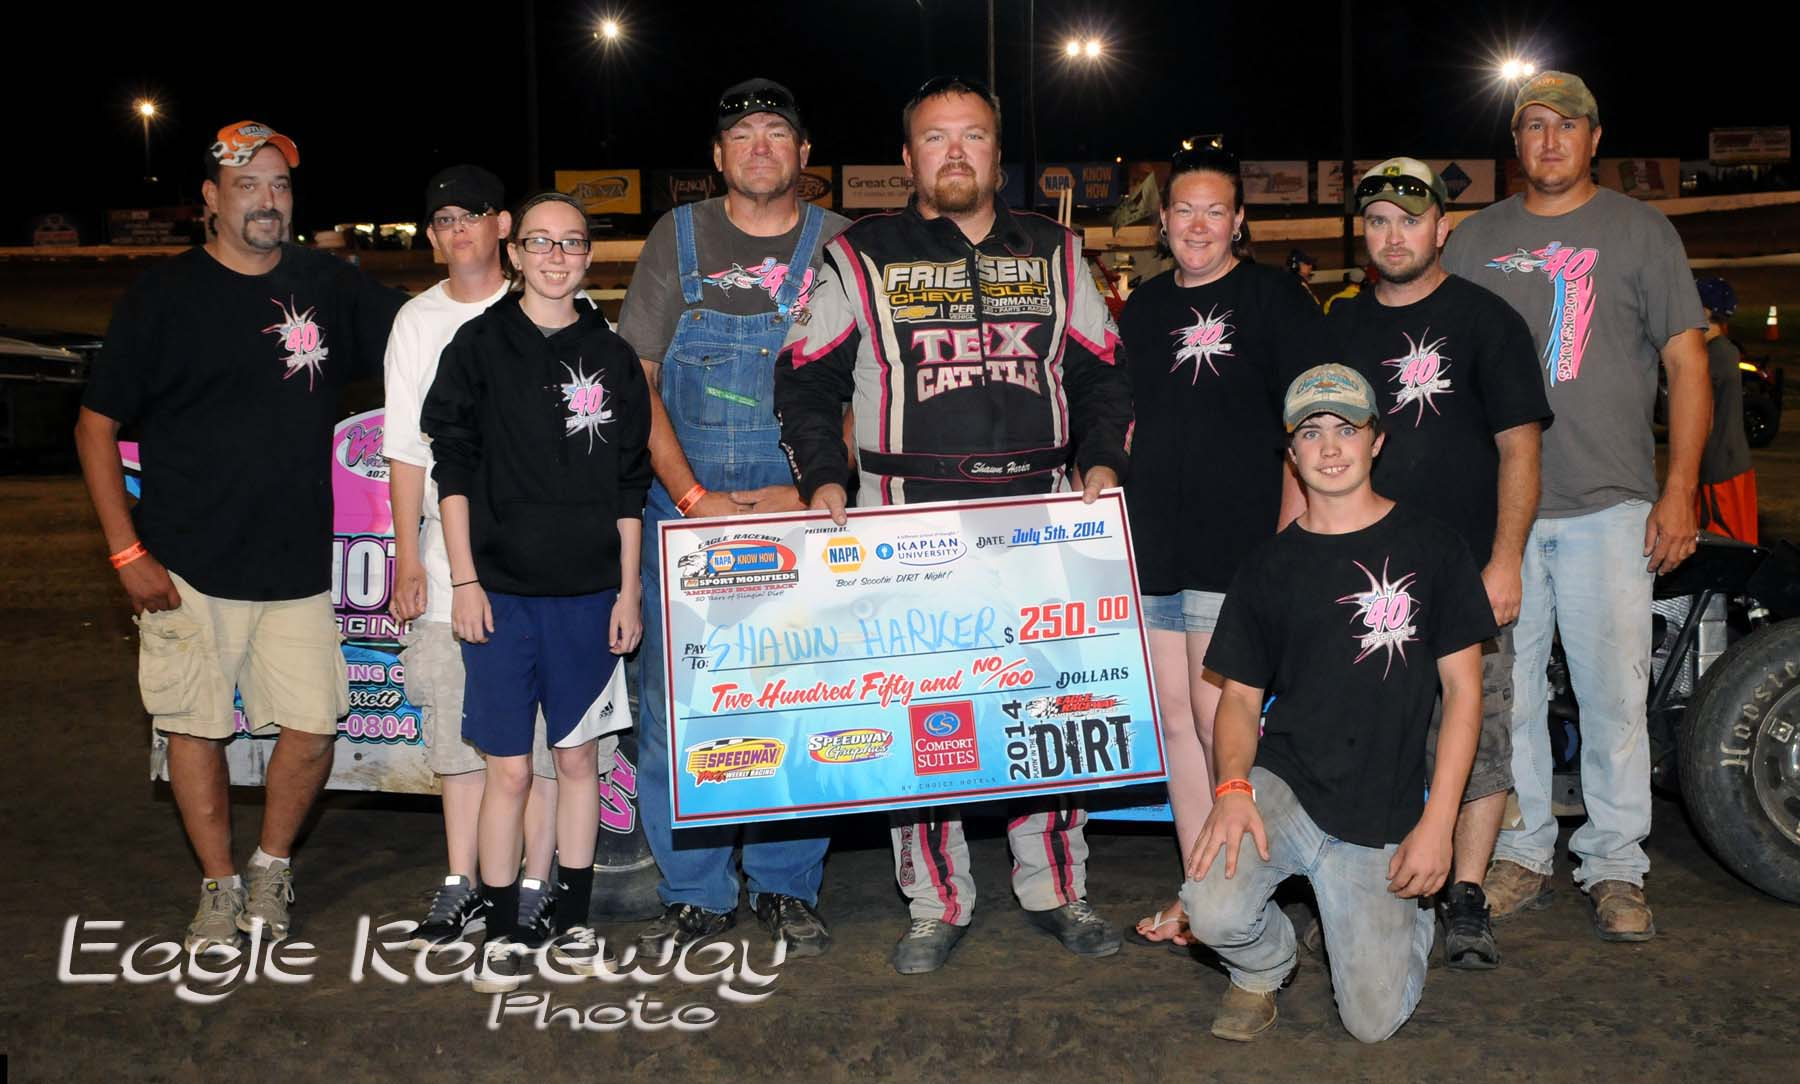 eagle-07-05-14-573-shawn-harker-with-crew-and-family-joeorthphotos